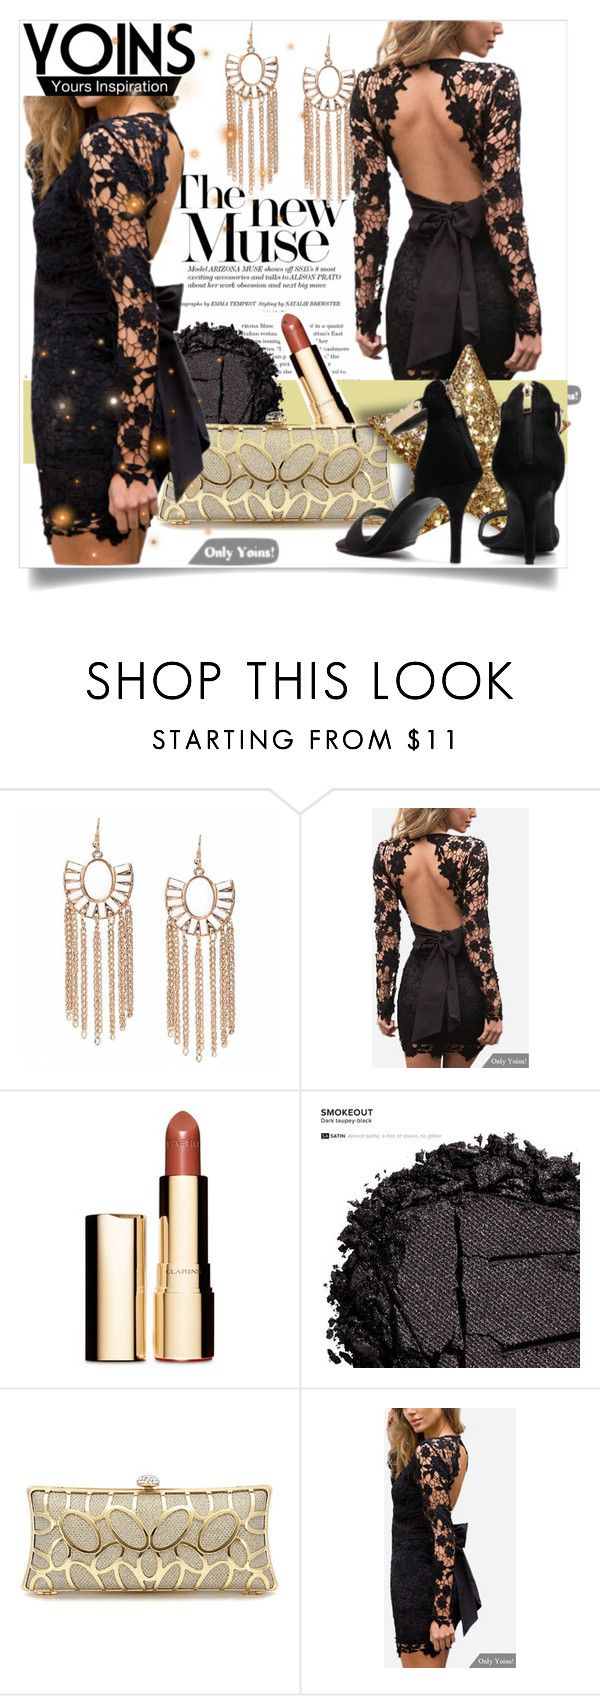 """""""Yoins"""" by srebrnisnijeg ❤ liked on Polyvore featuring Clarins and Urban Decay"""